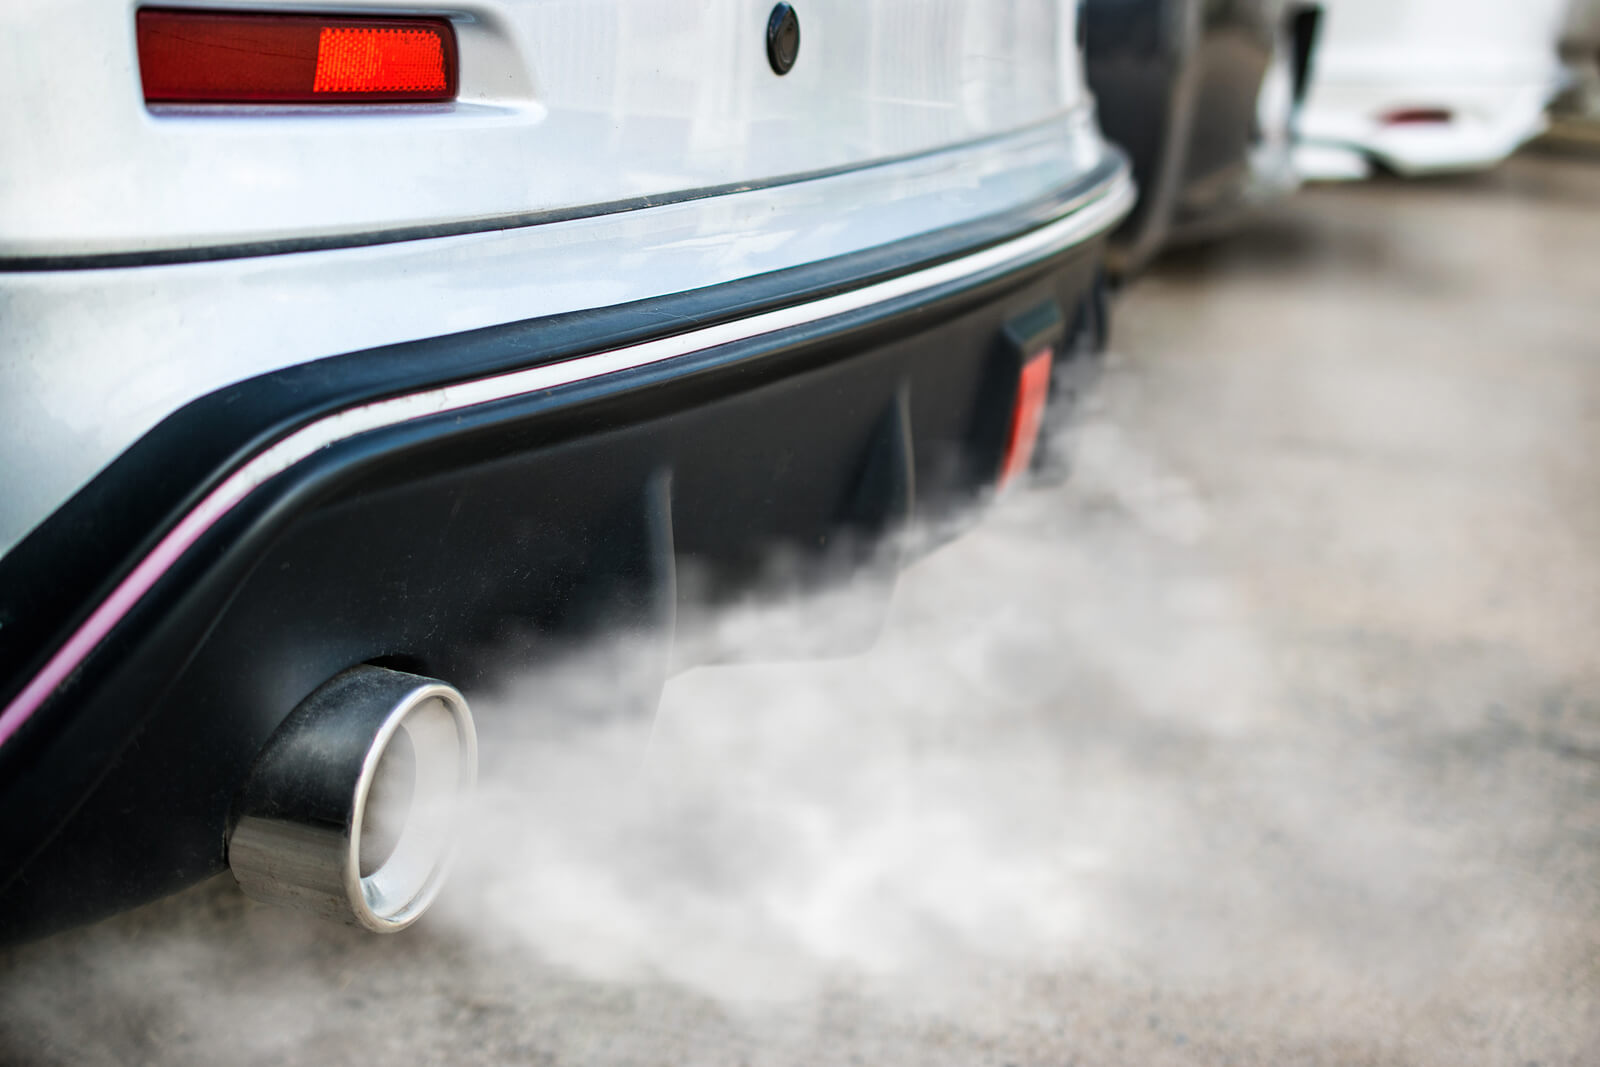 exhaust blowing lots of smoke into atmosphere - main reason why people question if they should buy a diesel car or not